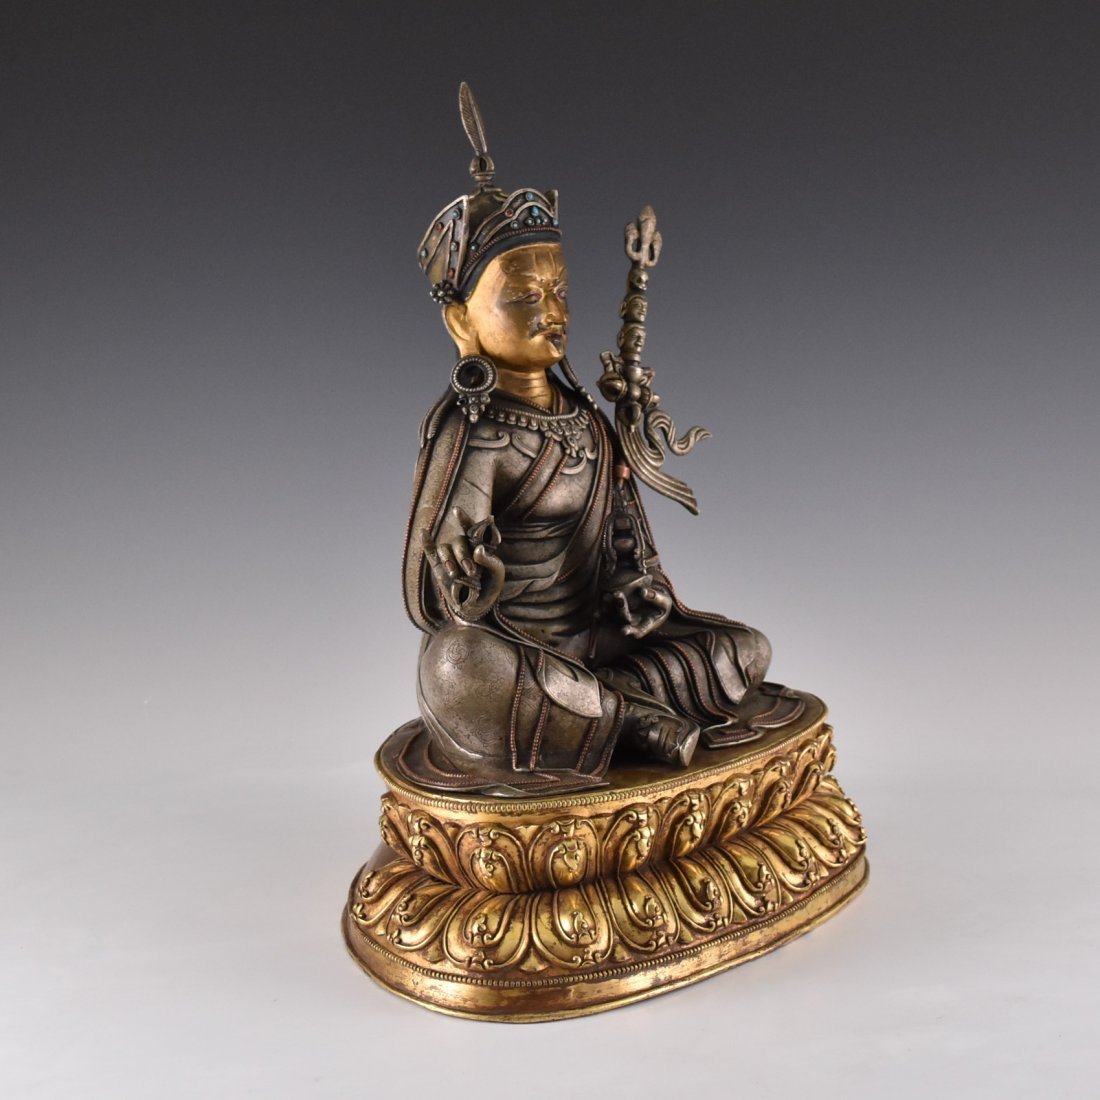 IMPORTANT, 17TH/18TH C. LARGE BRONZE SILVER GILT BUDDHA - 3